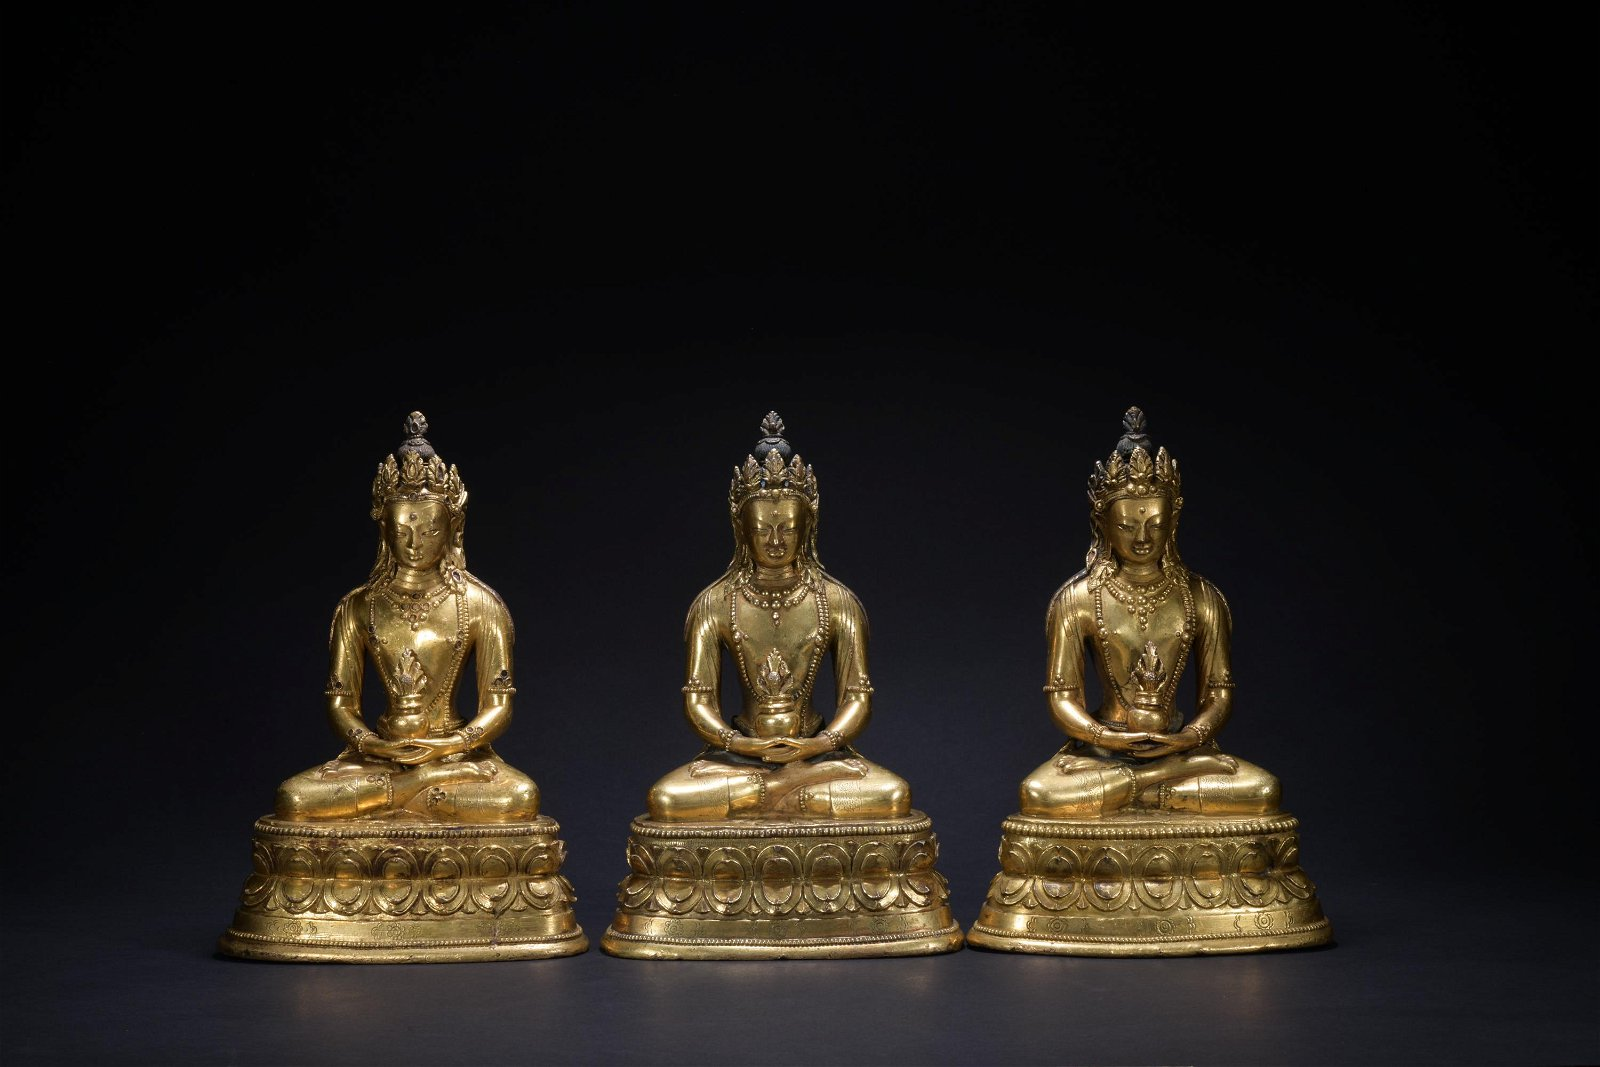 Qing dynasty gilt bronze statue of the Buddha of